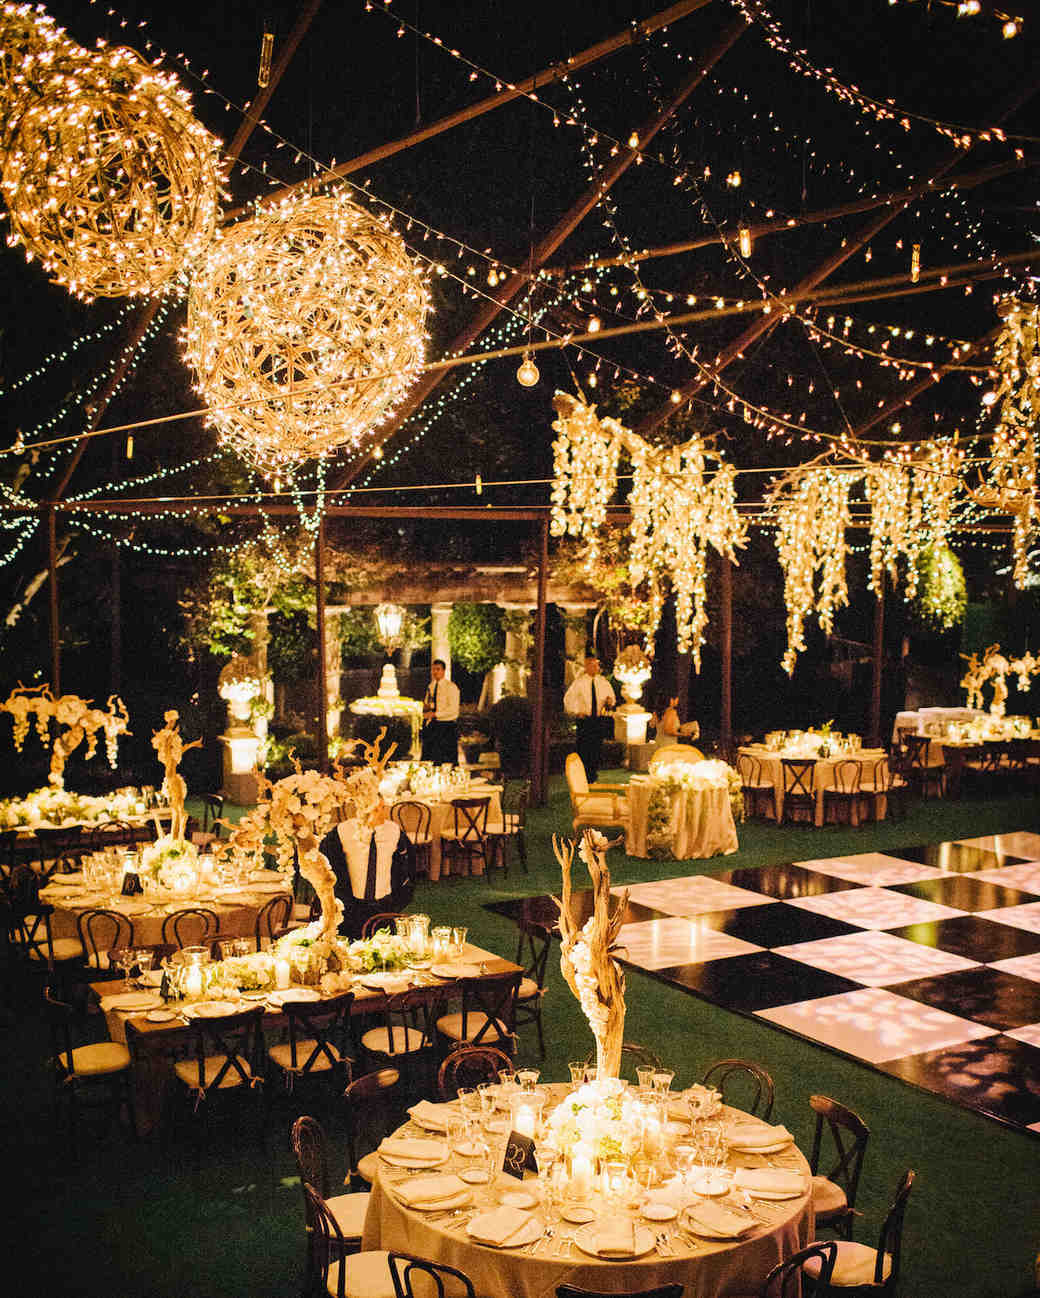 outdoor wedding lighting ideas from real celebrations. Black Bedroom Furniture Sets. Home Design Ideas